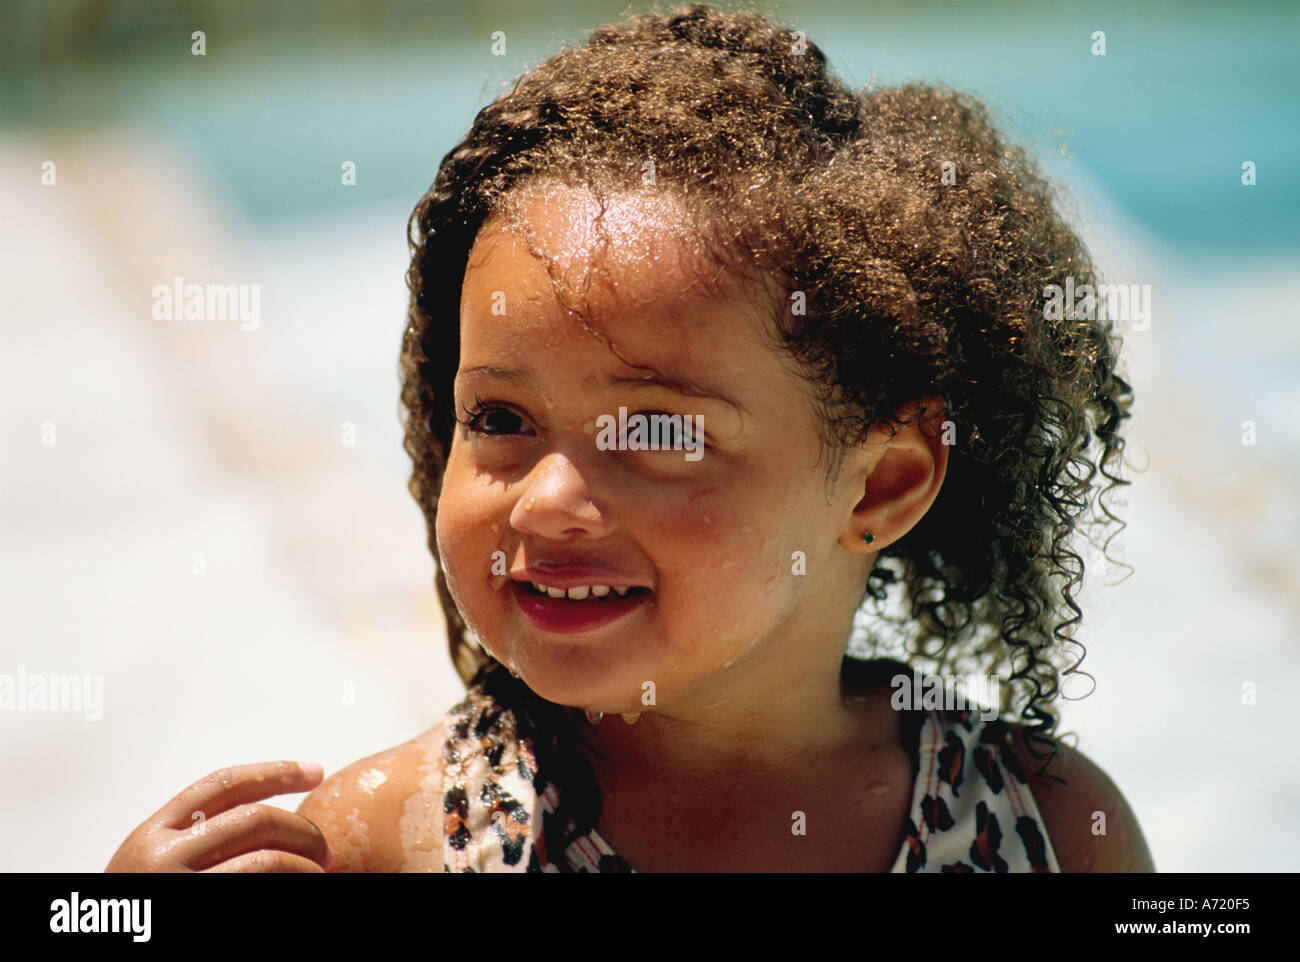 Close up of a young African American girl who has just come out of the pool - Stock Image